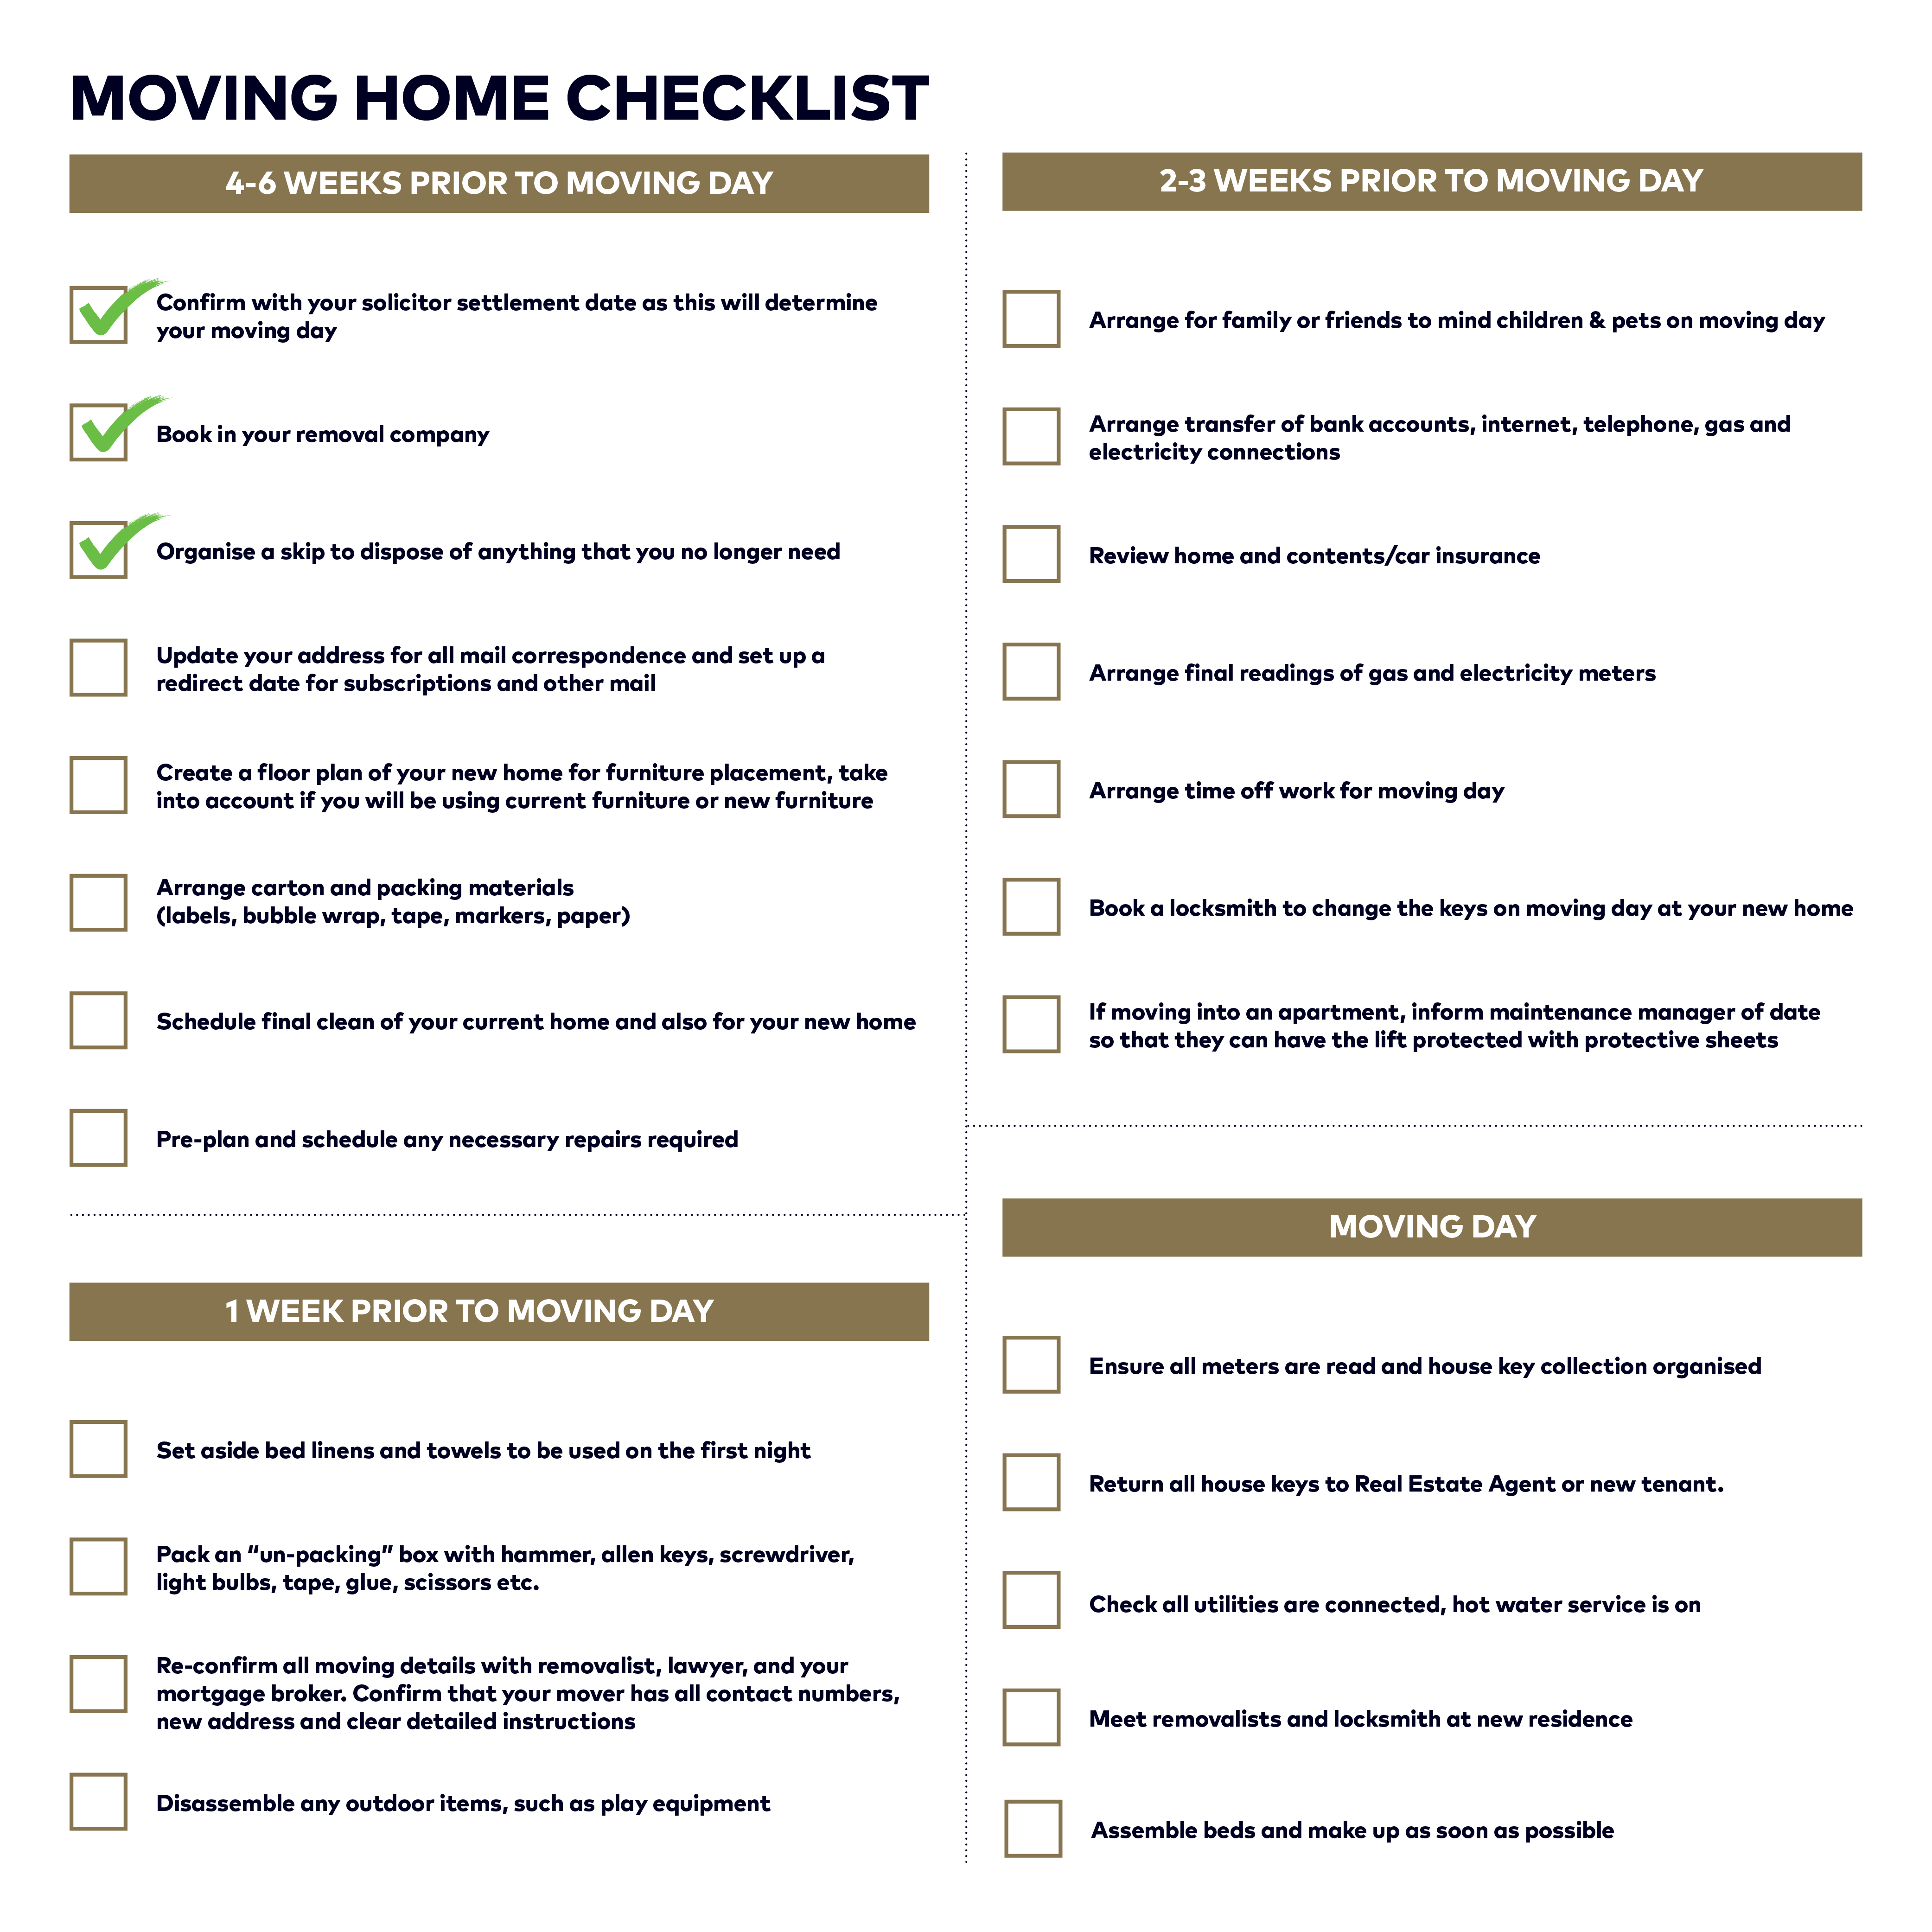 10 things to do before moving into your new home tiffen co - Things to do before moving into new house ...